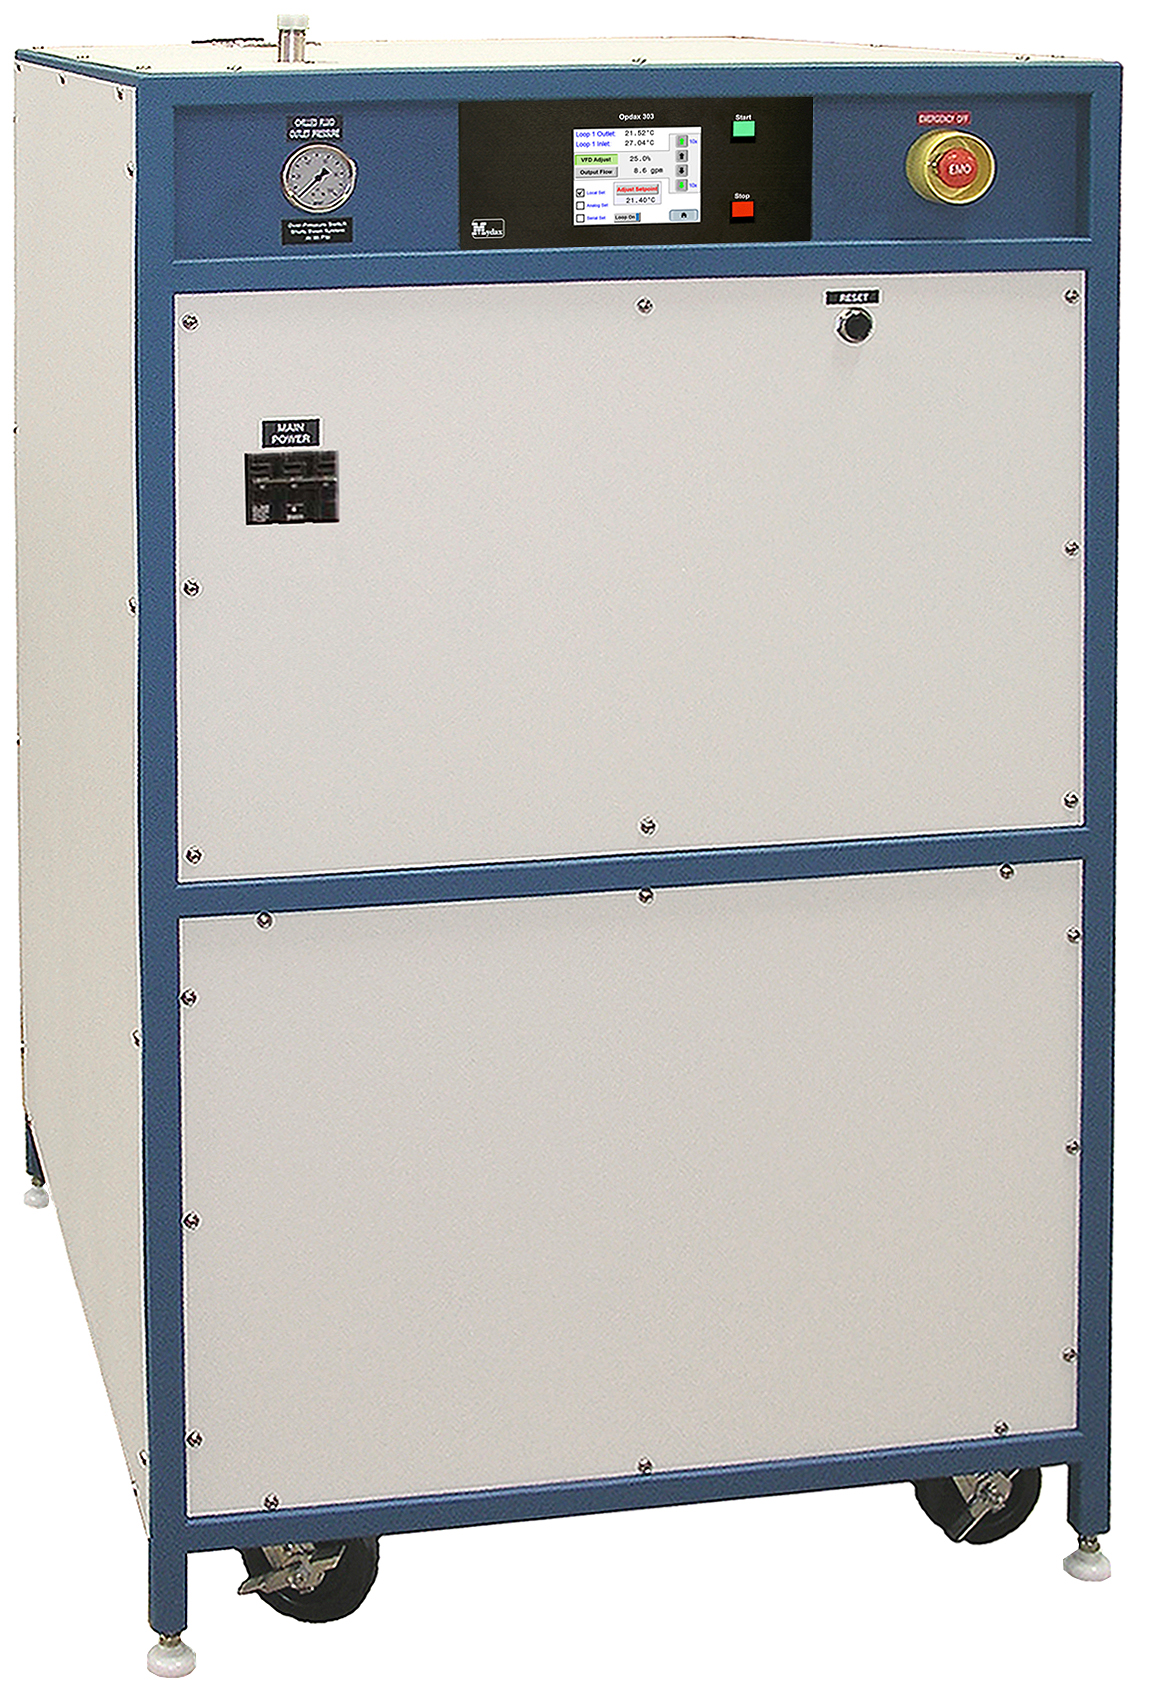 CryoDax 12 Low Temperature Liquid Chiller System